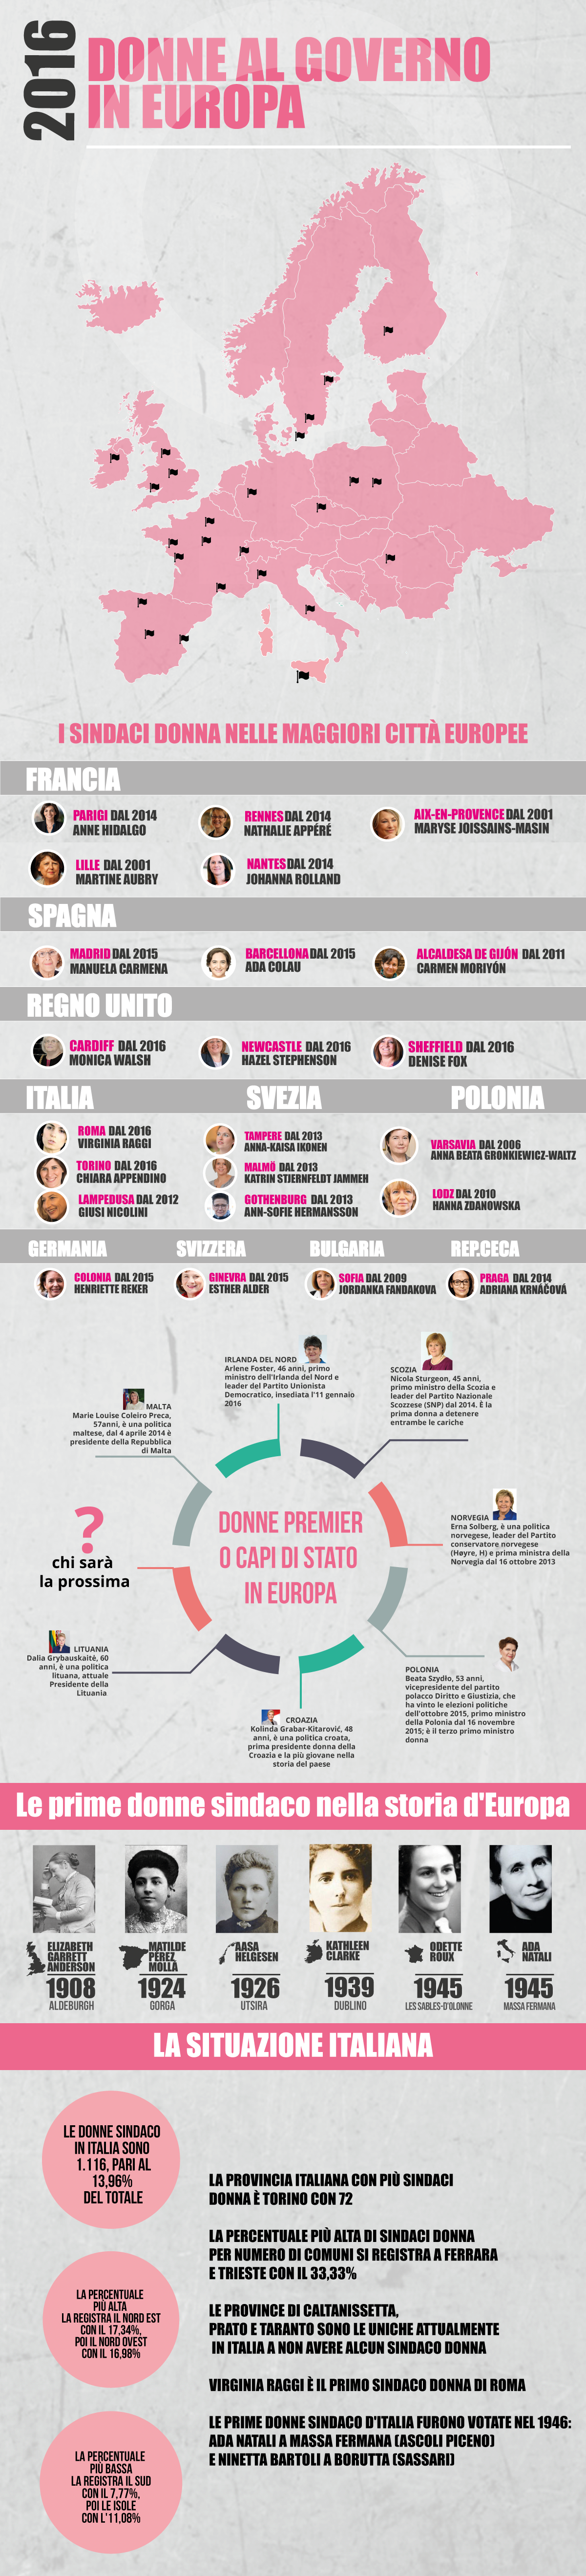 Le donne al potere in Europa (Stampaprint)